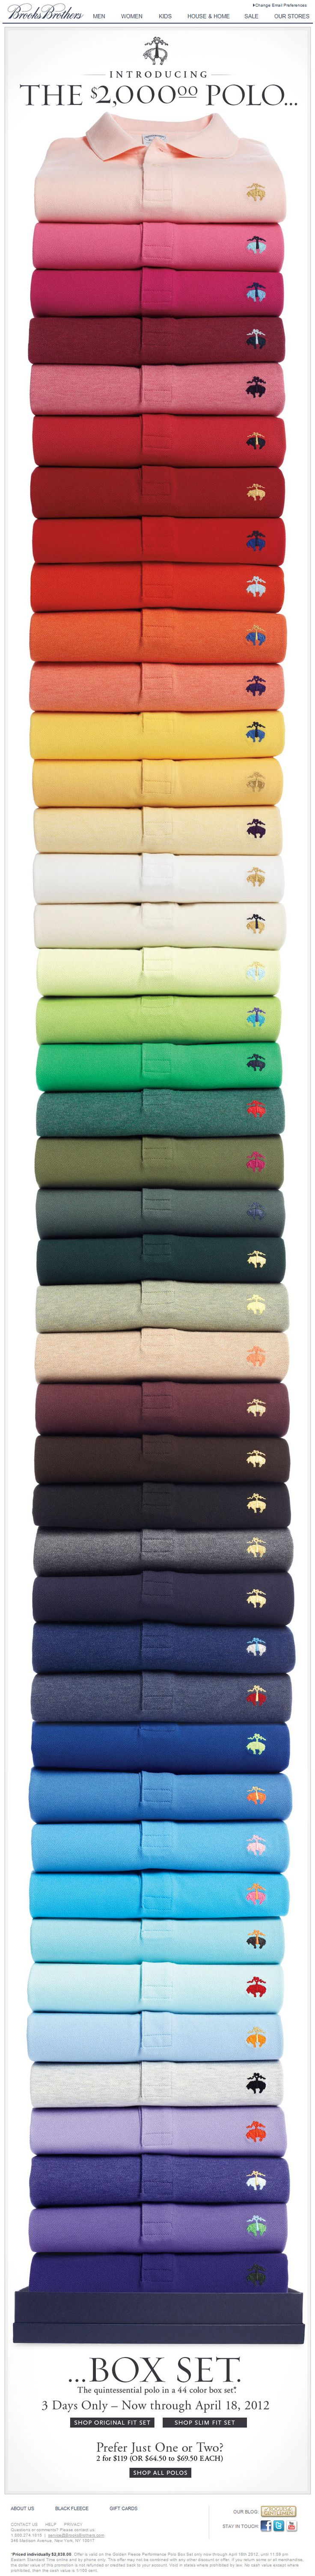 brooksbros crazy but also wonderful super long email for their 44 polo shirt box set! Love the colours and idea behind this.